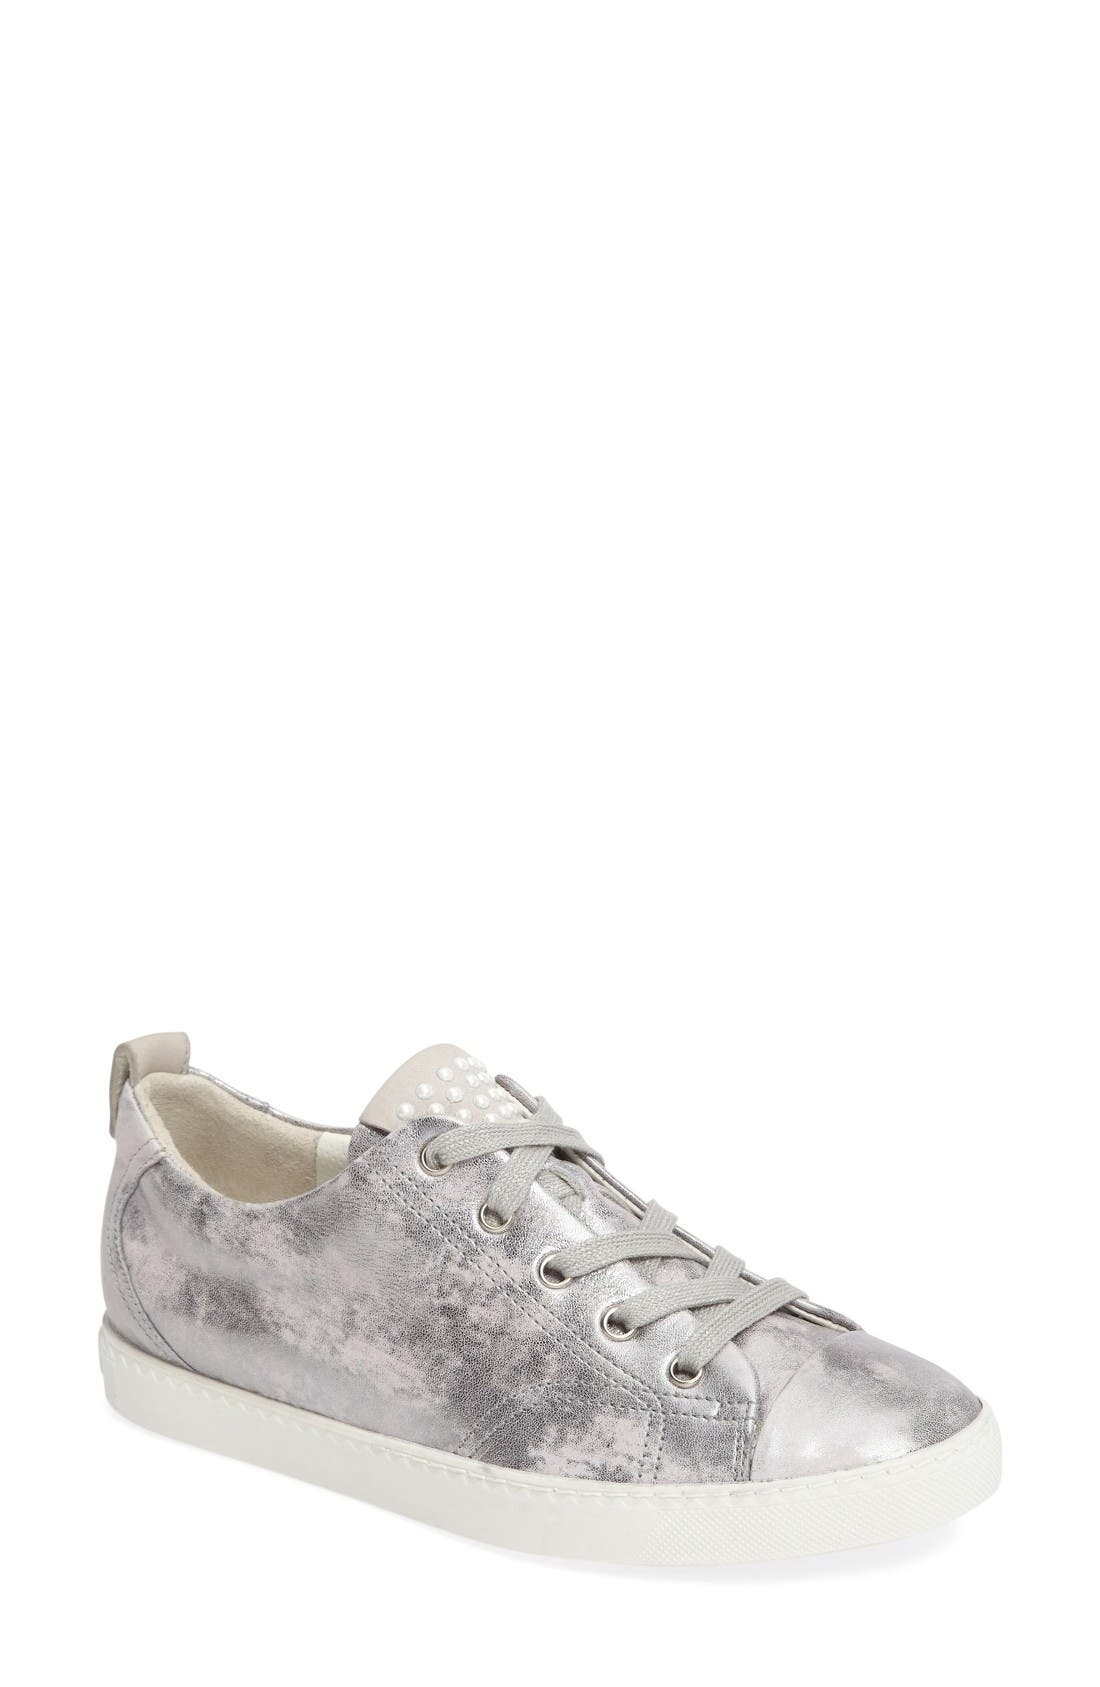 PAUL GREEN Pearl Metallic Sneaker